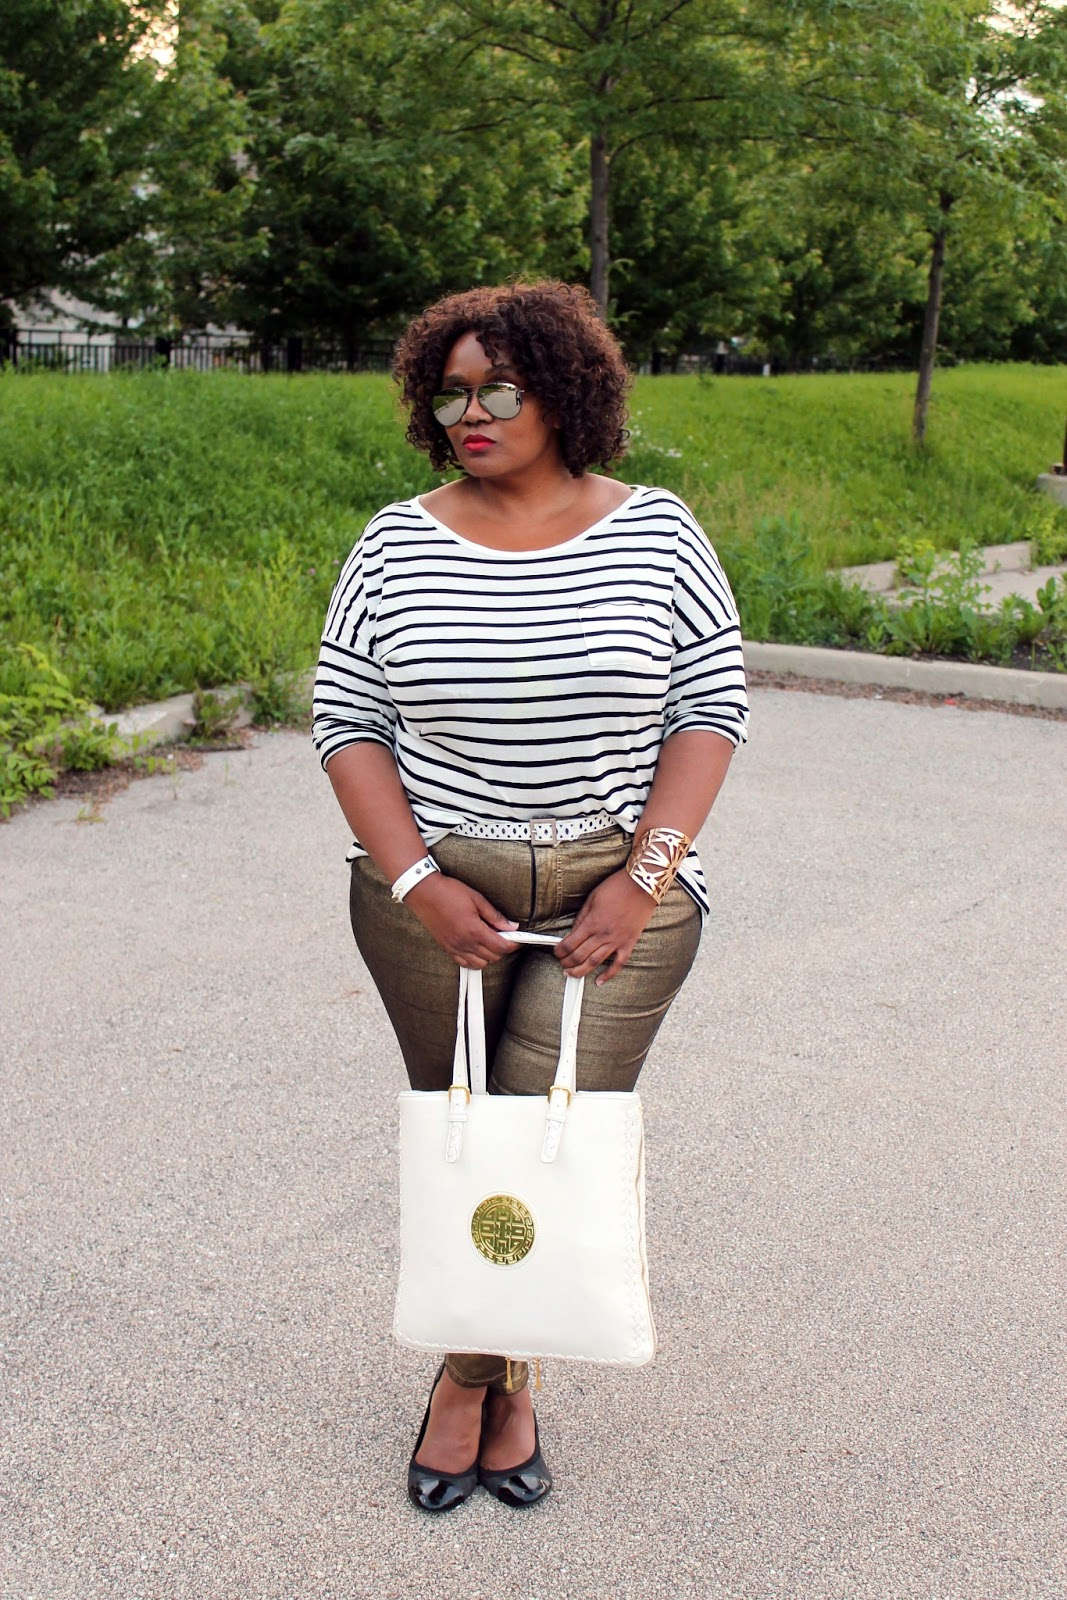 Curvatude™ - Plus Size Fashion Beauty and Lifestyle Blog: Jeans